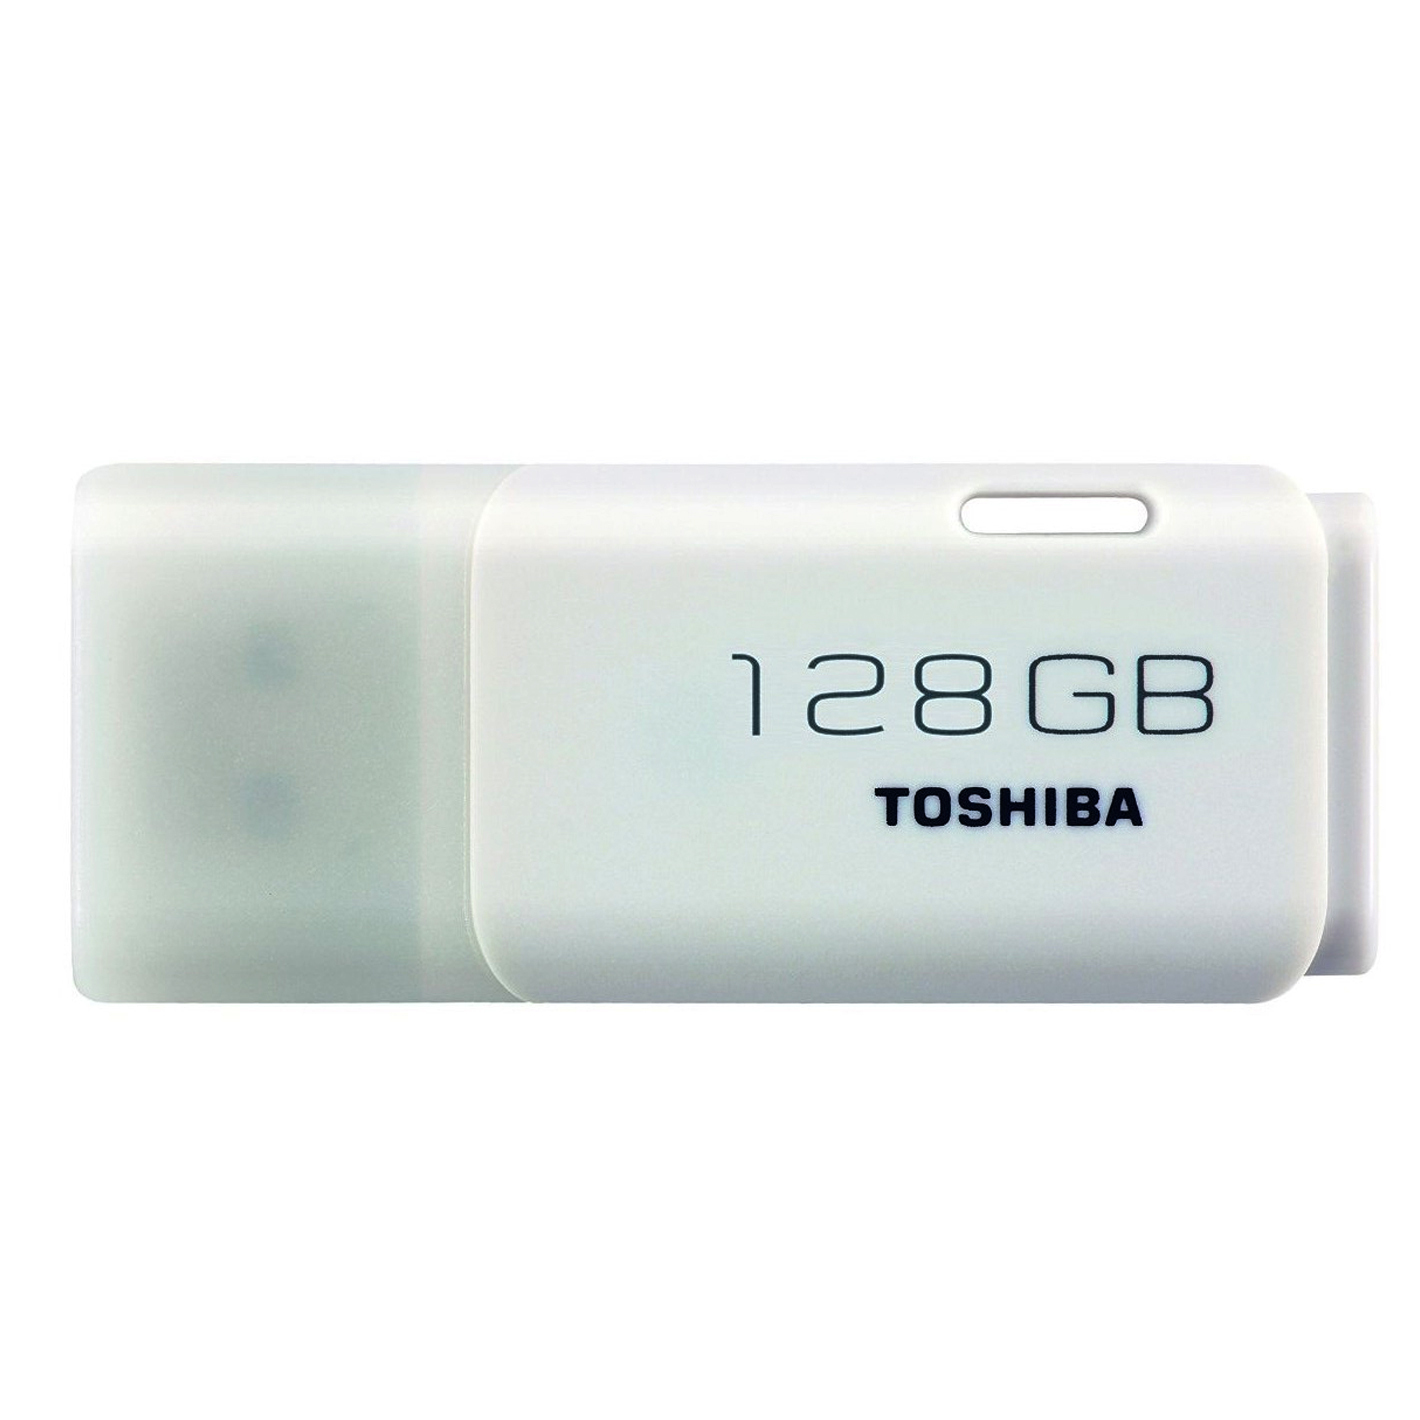 TOSHIBA THN-U202W1280E4 128GB USB 2.0 TYPE-A CONNECTOR WHITE FLASH DRIVE